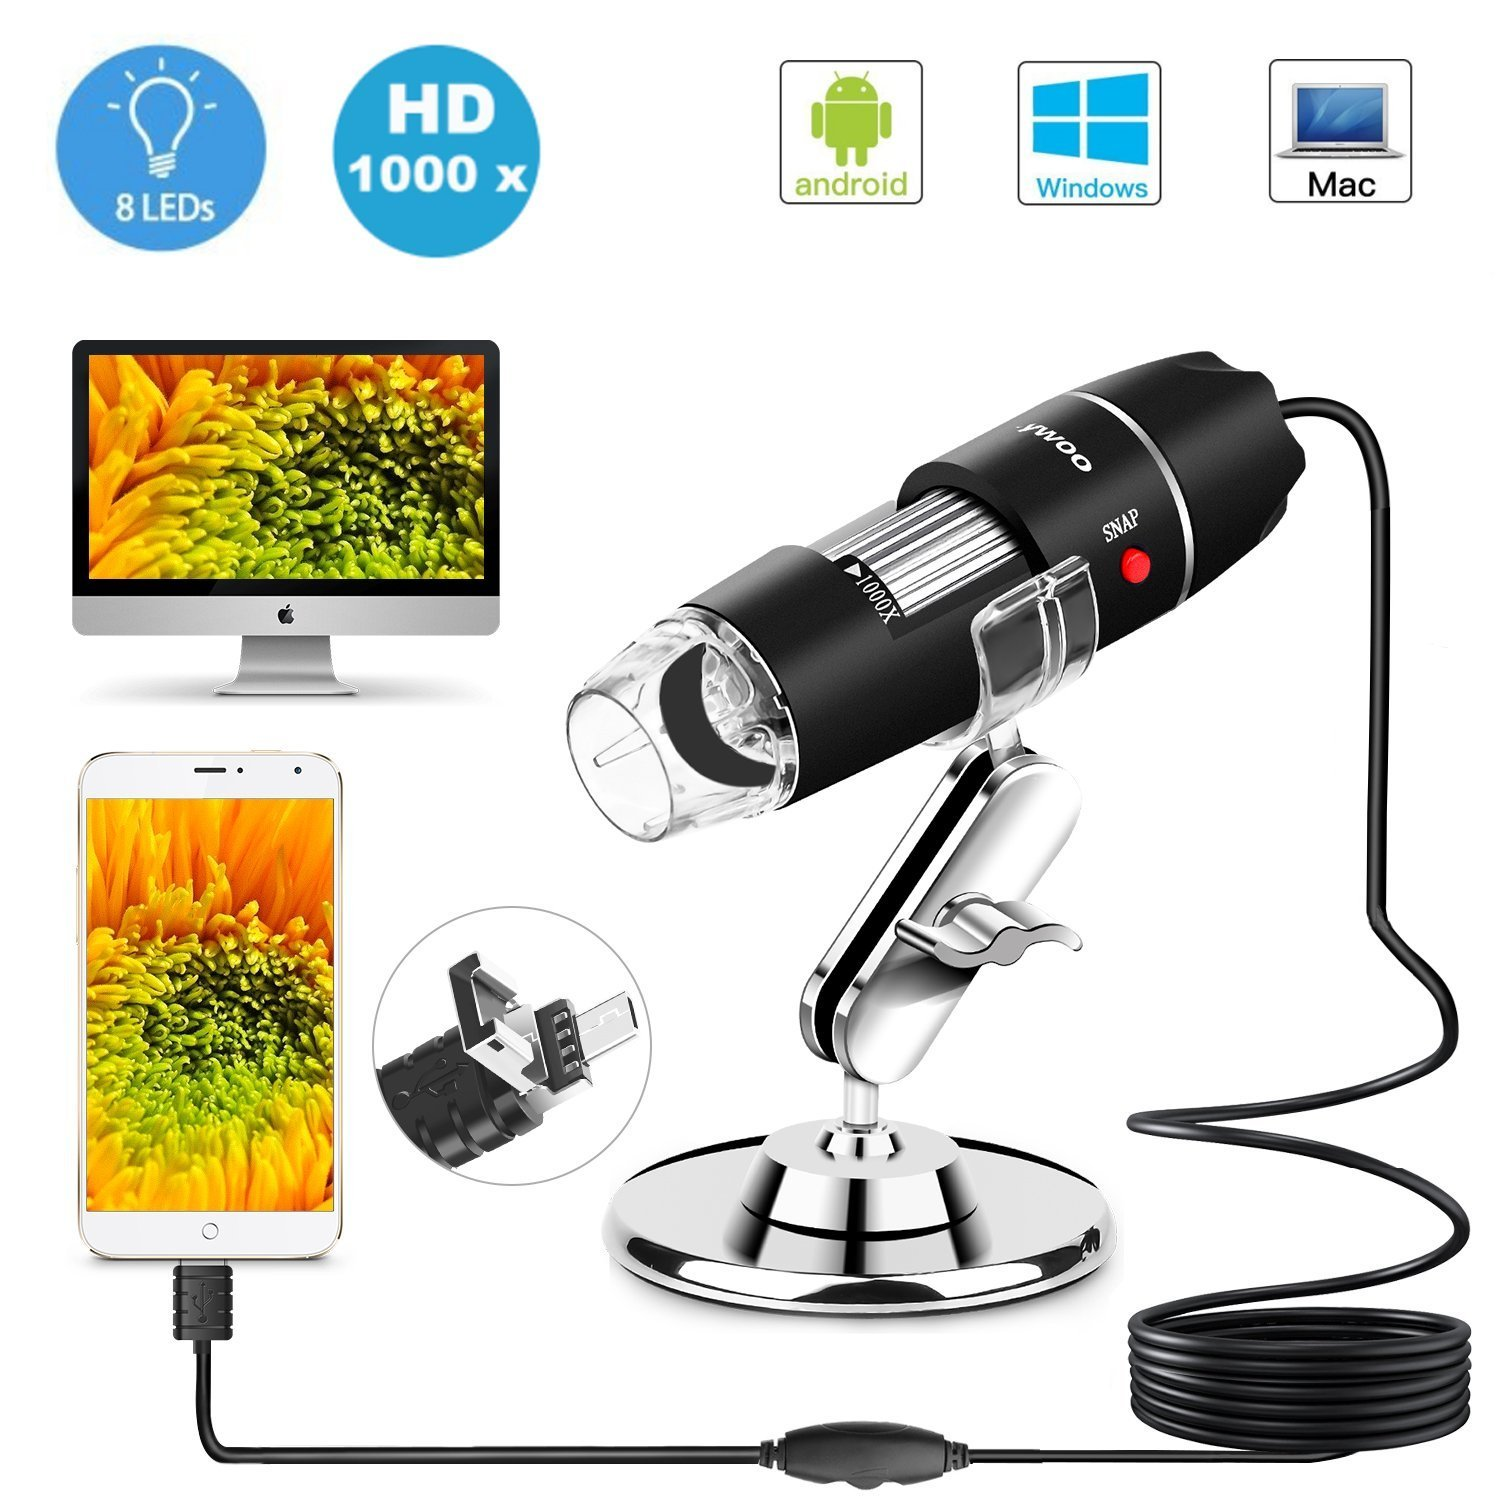 USB Microscope 8 LED USB 2.0 Digital Microscope, 40 to 1000x Magnification Endoscope Mini Camera with OTG Adapter and Metal Stand, Compatible with Mac Window 7 8 10 Android Linux DigiHero